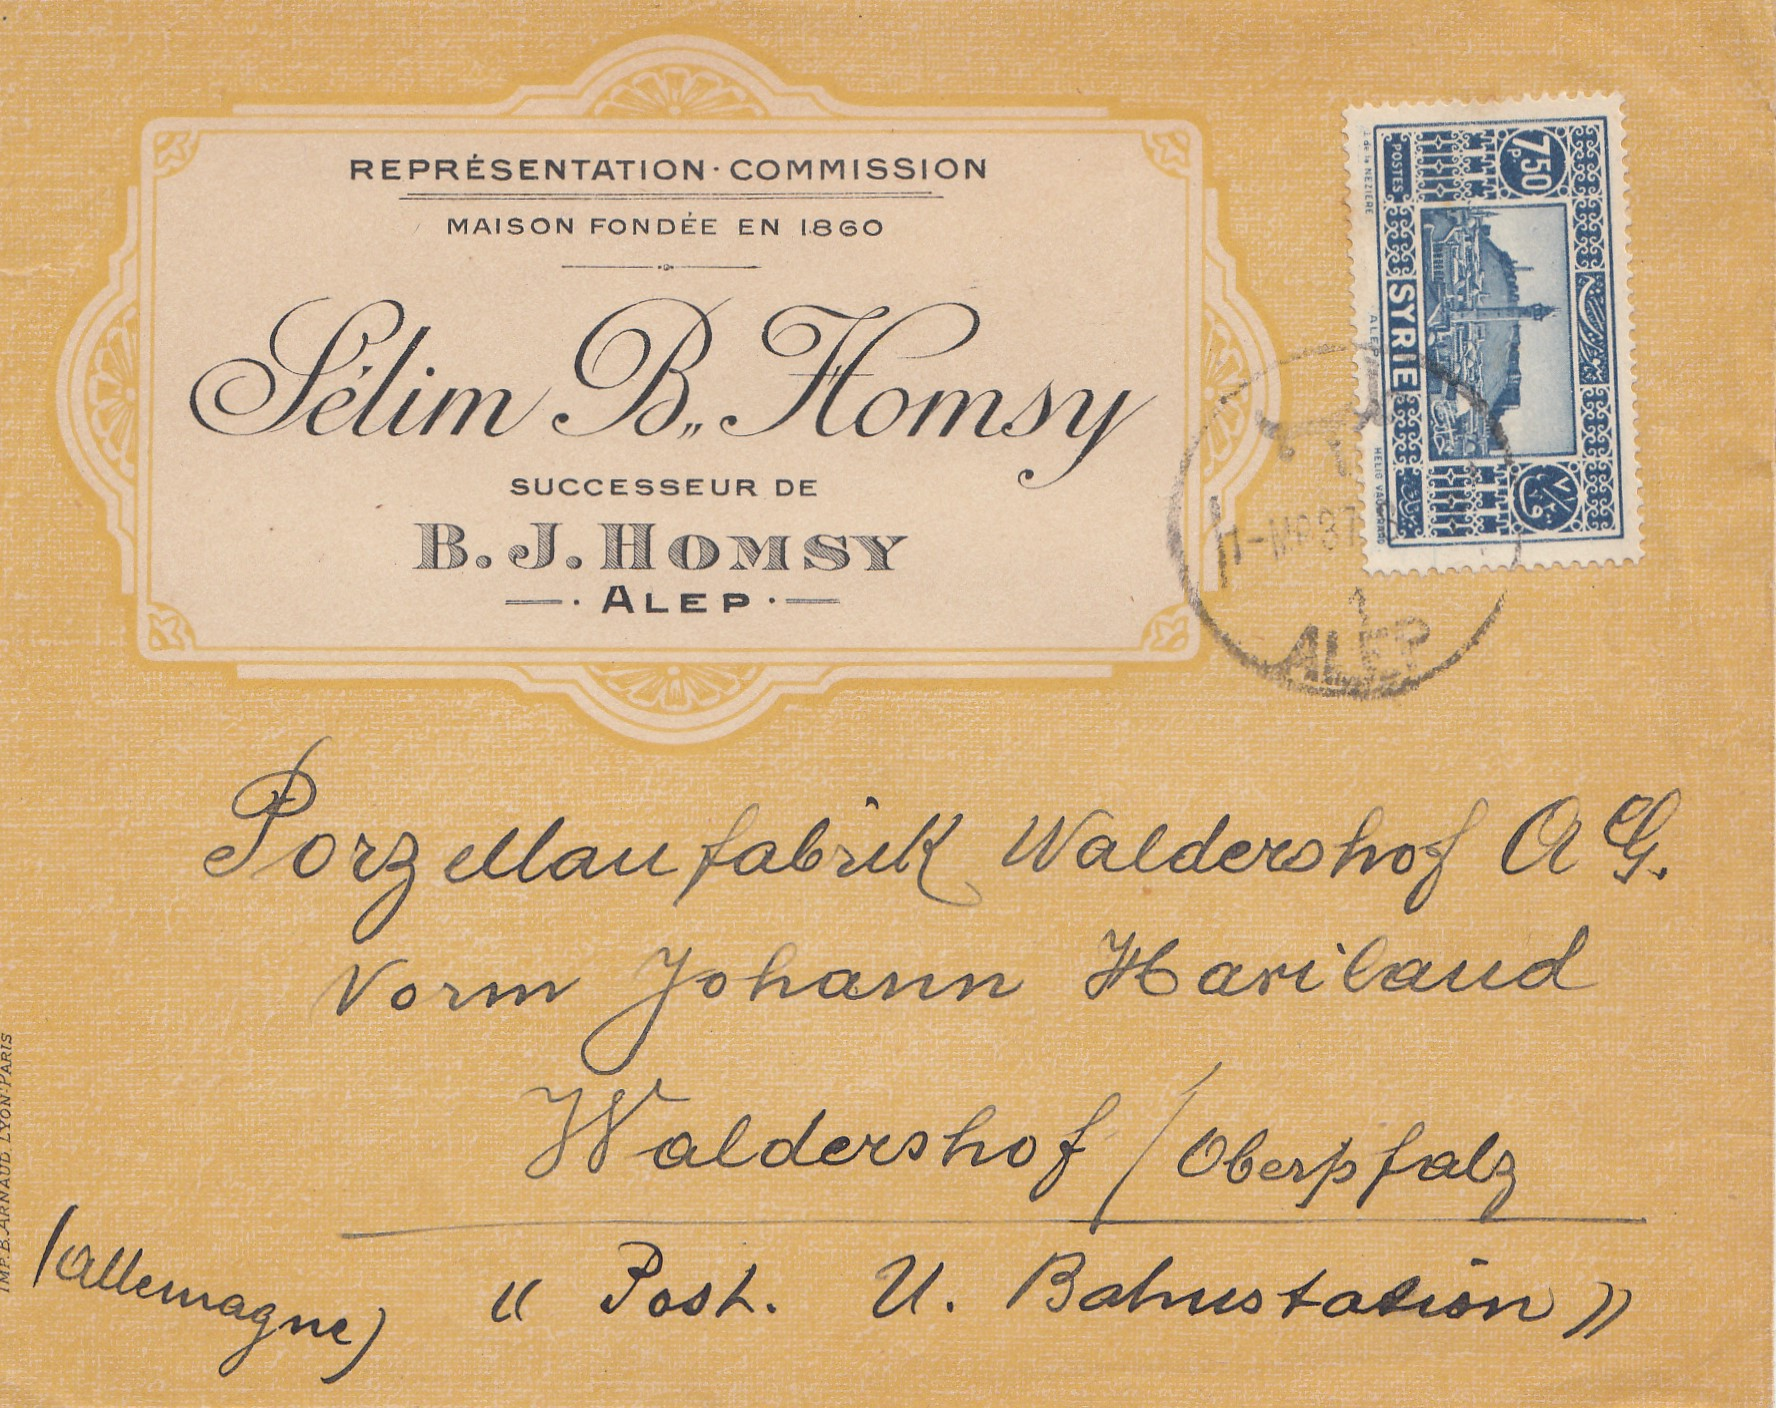 French-colonies-syrienne-Alep-1937-by-air-mail-to-walderhof-fabrica-de-porcelana